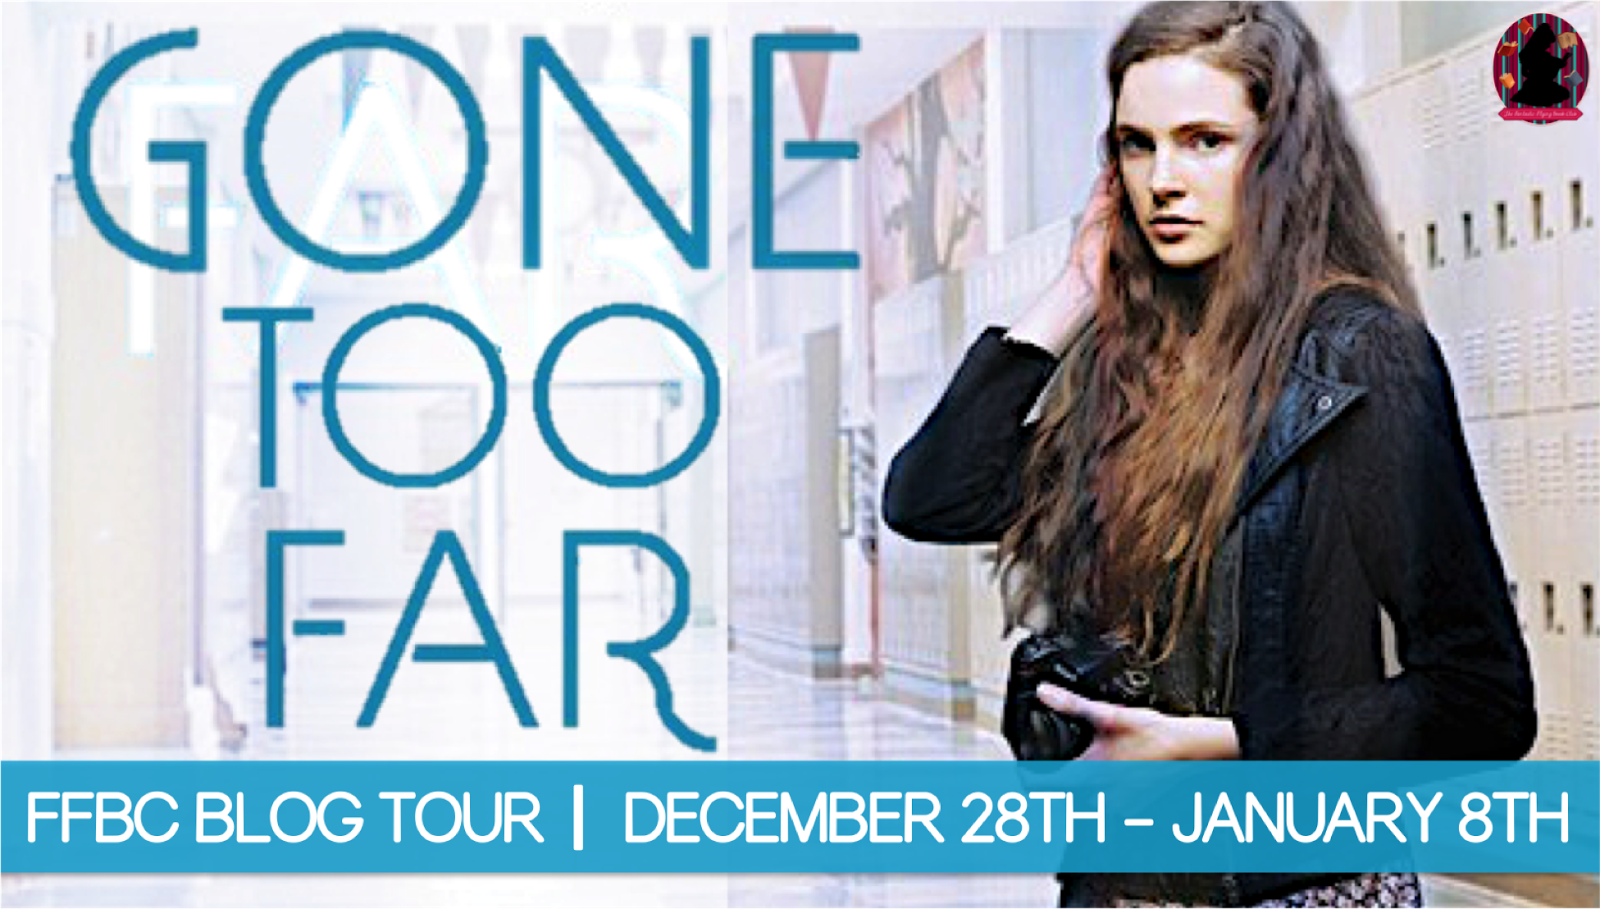 http://theunofficialaddictionbookfanclub.blogspot.com/2014/11/ffbc-blog-tour-gone-too-far-by-natalie.html